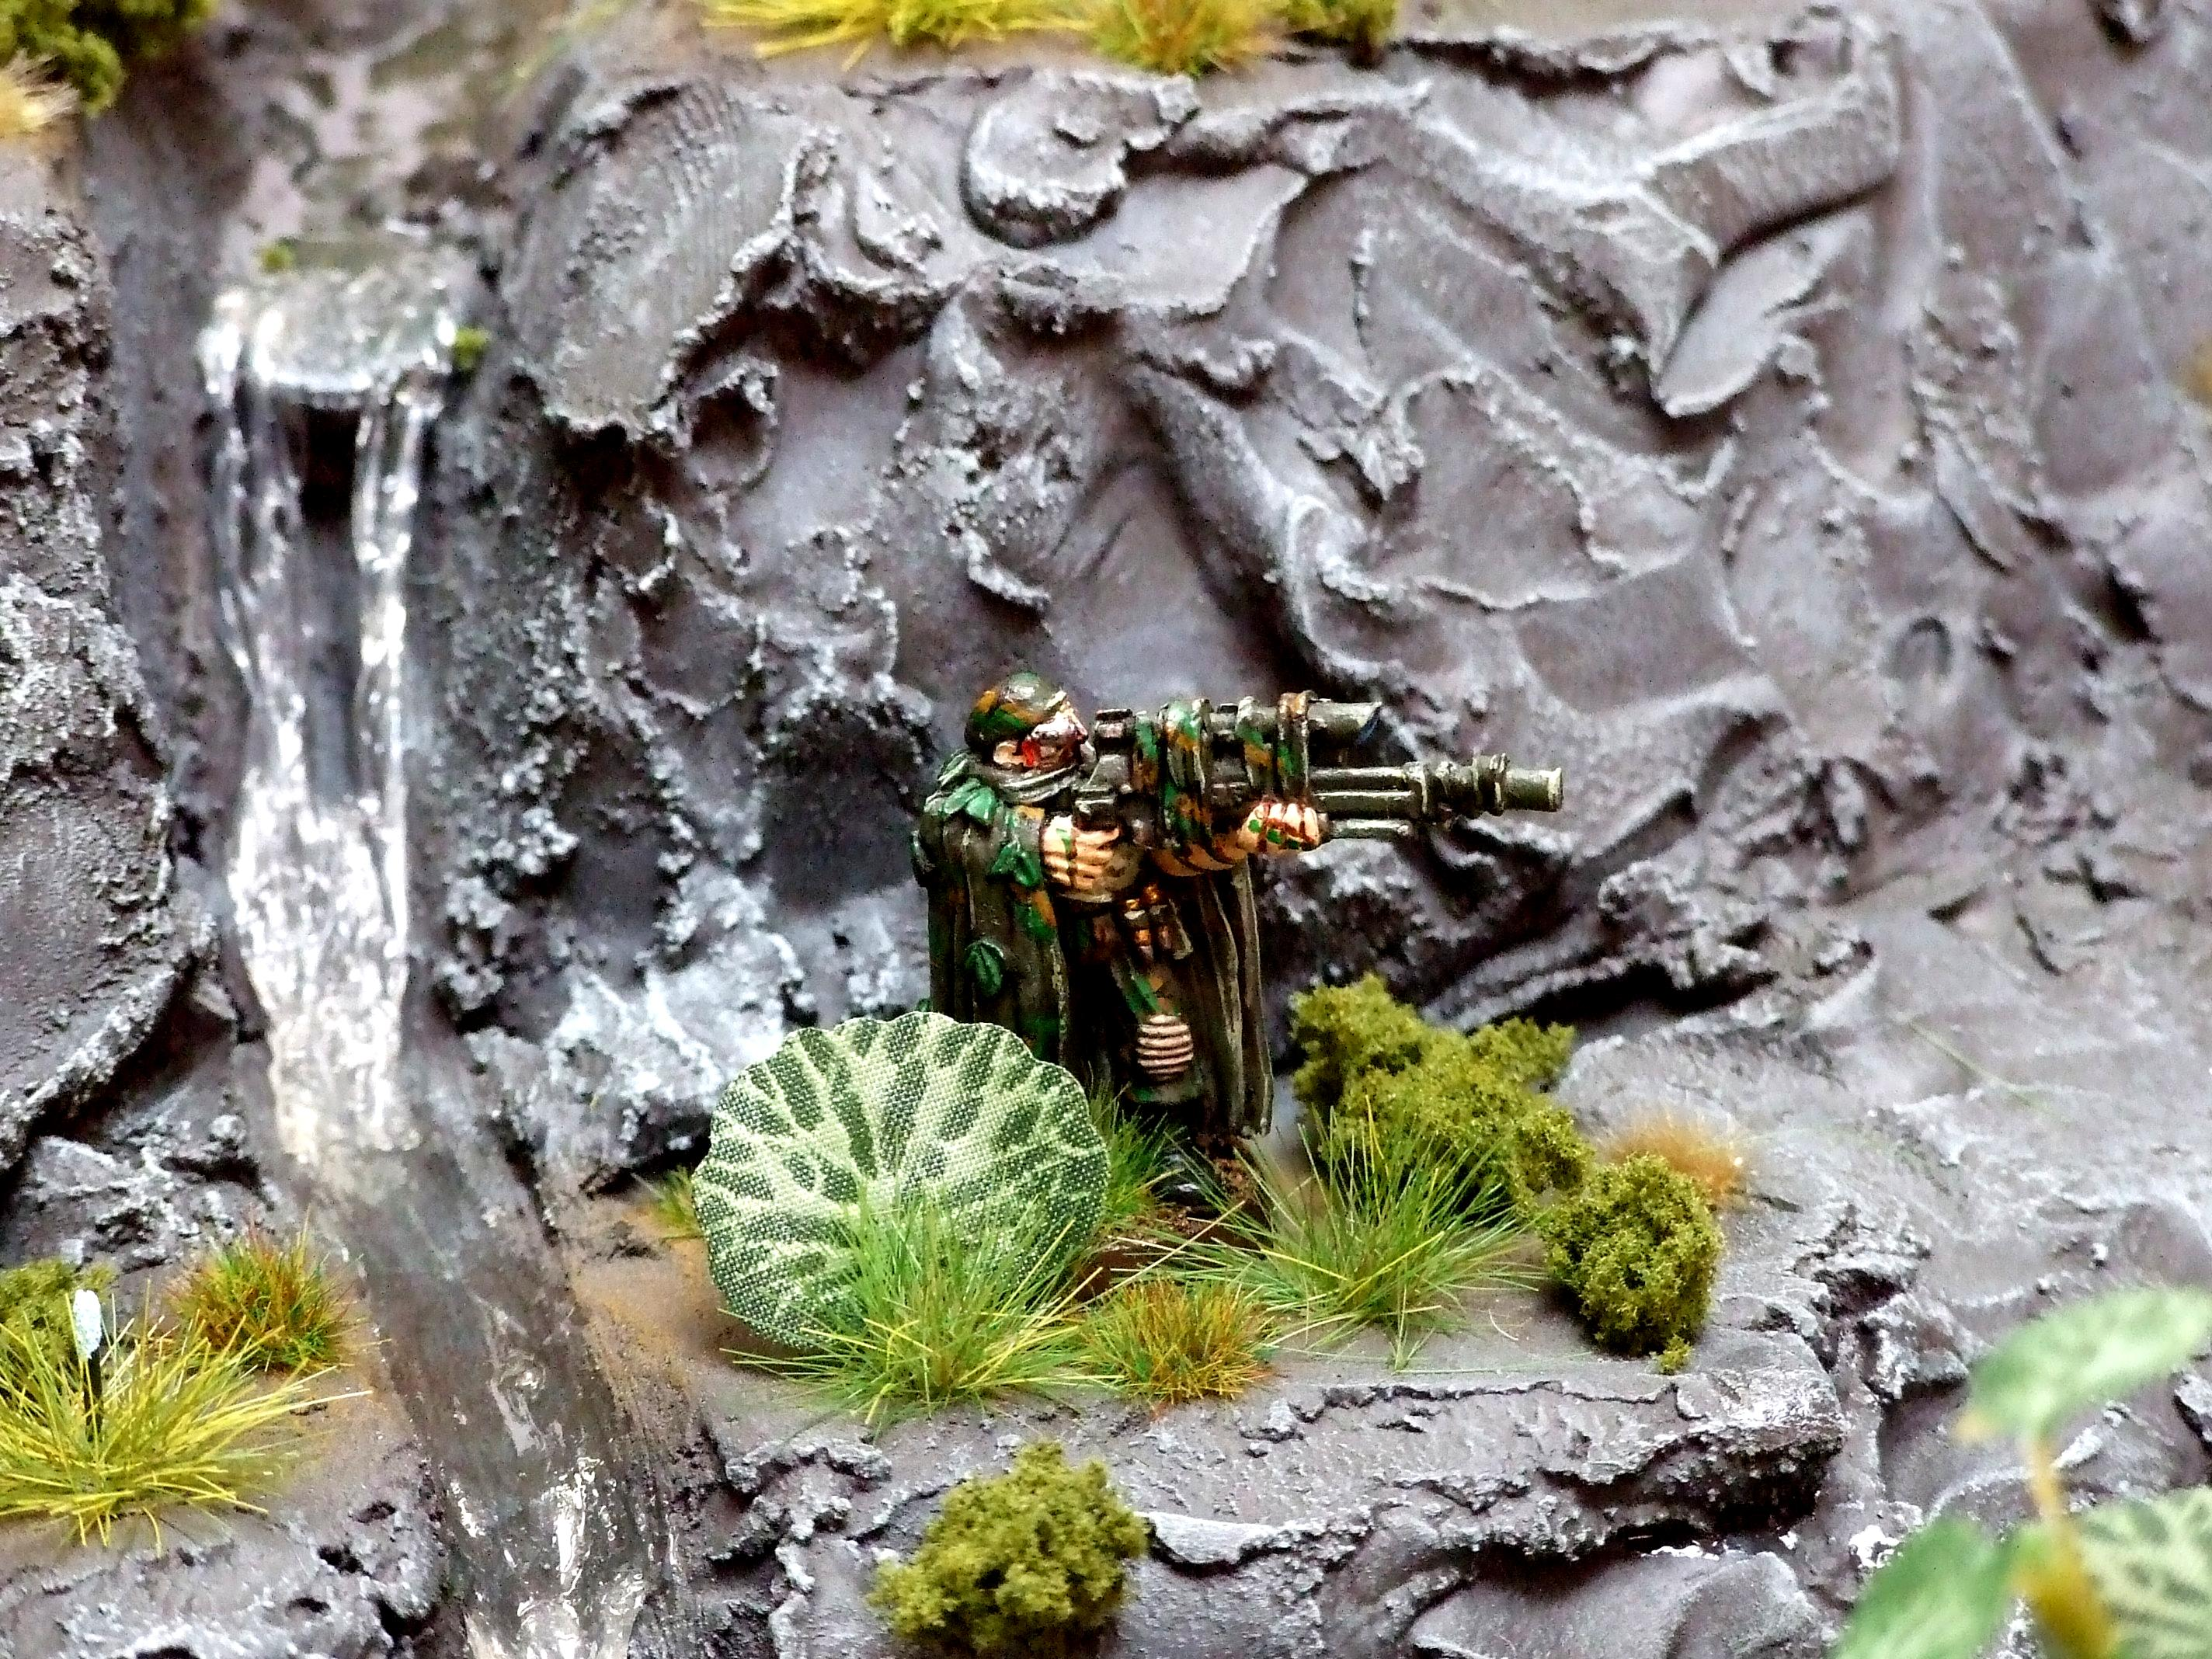 2013, Aop, Armies On Parade, Camo Cloak, Catachan, Imperial Guard, Jungle, Jungle Fighter, Jungle Scenery, Snipers, Warhammer 40,000, Winner